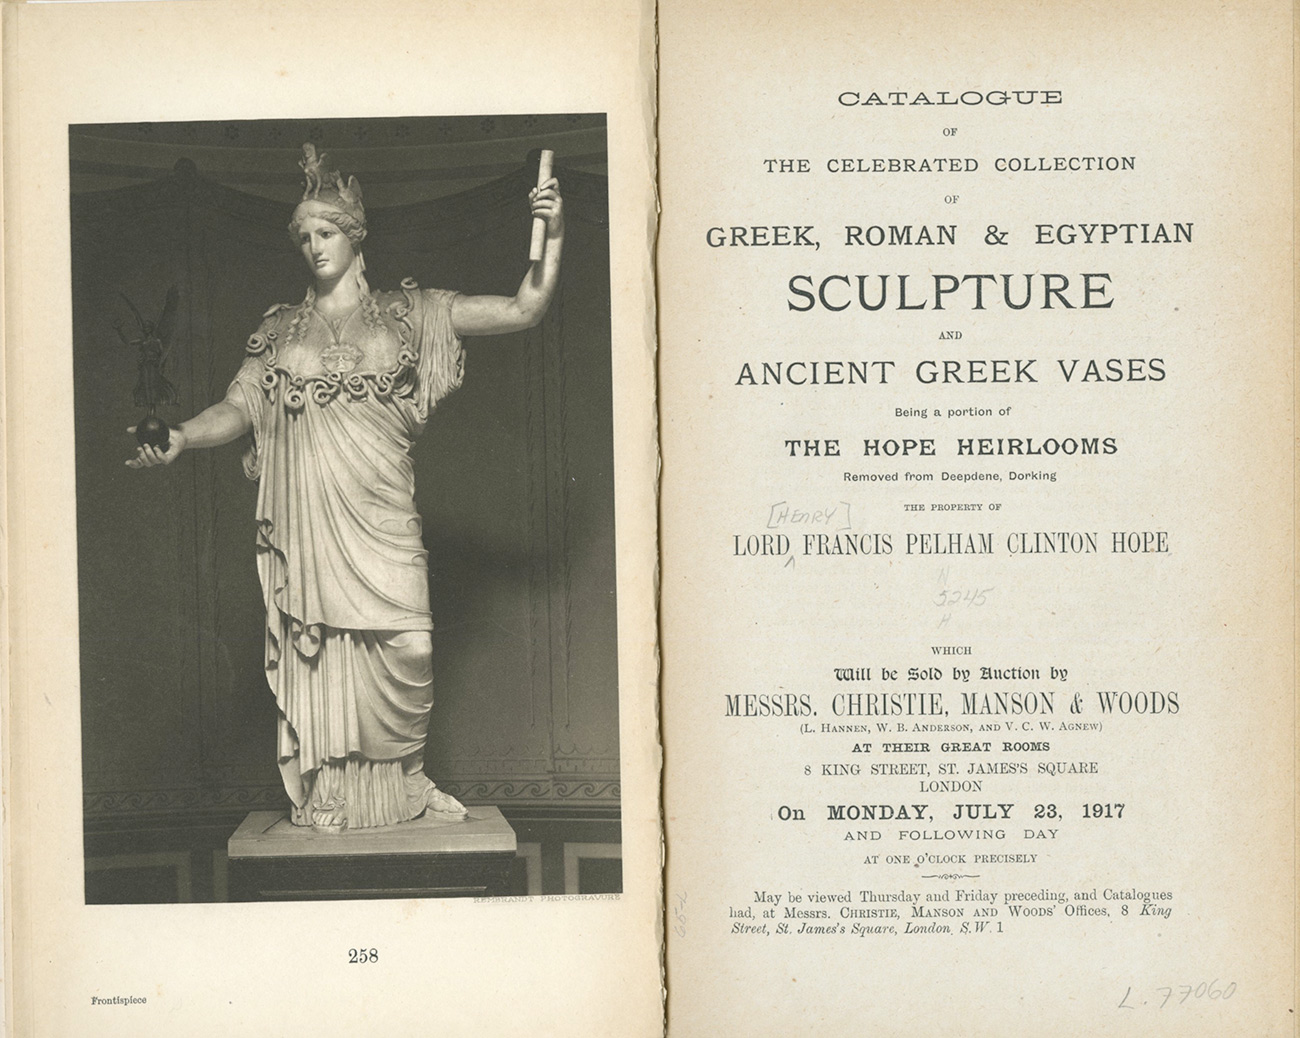 Scan of a 1917 auction catalog showing a black and white photograph of a marble statue of Athena with her left arm raised